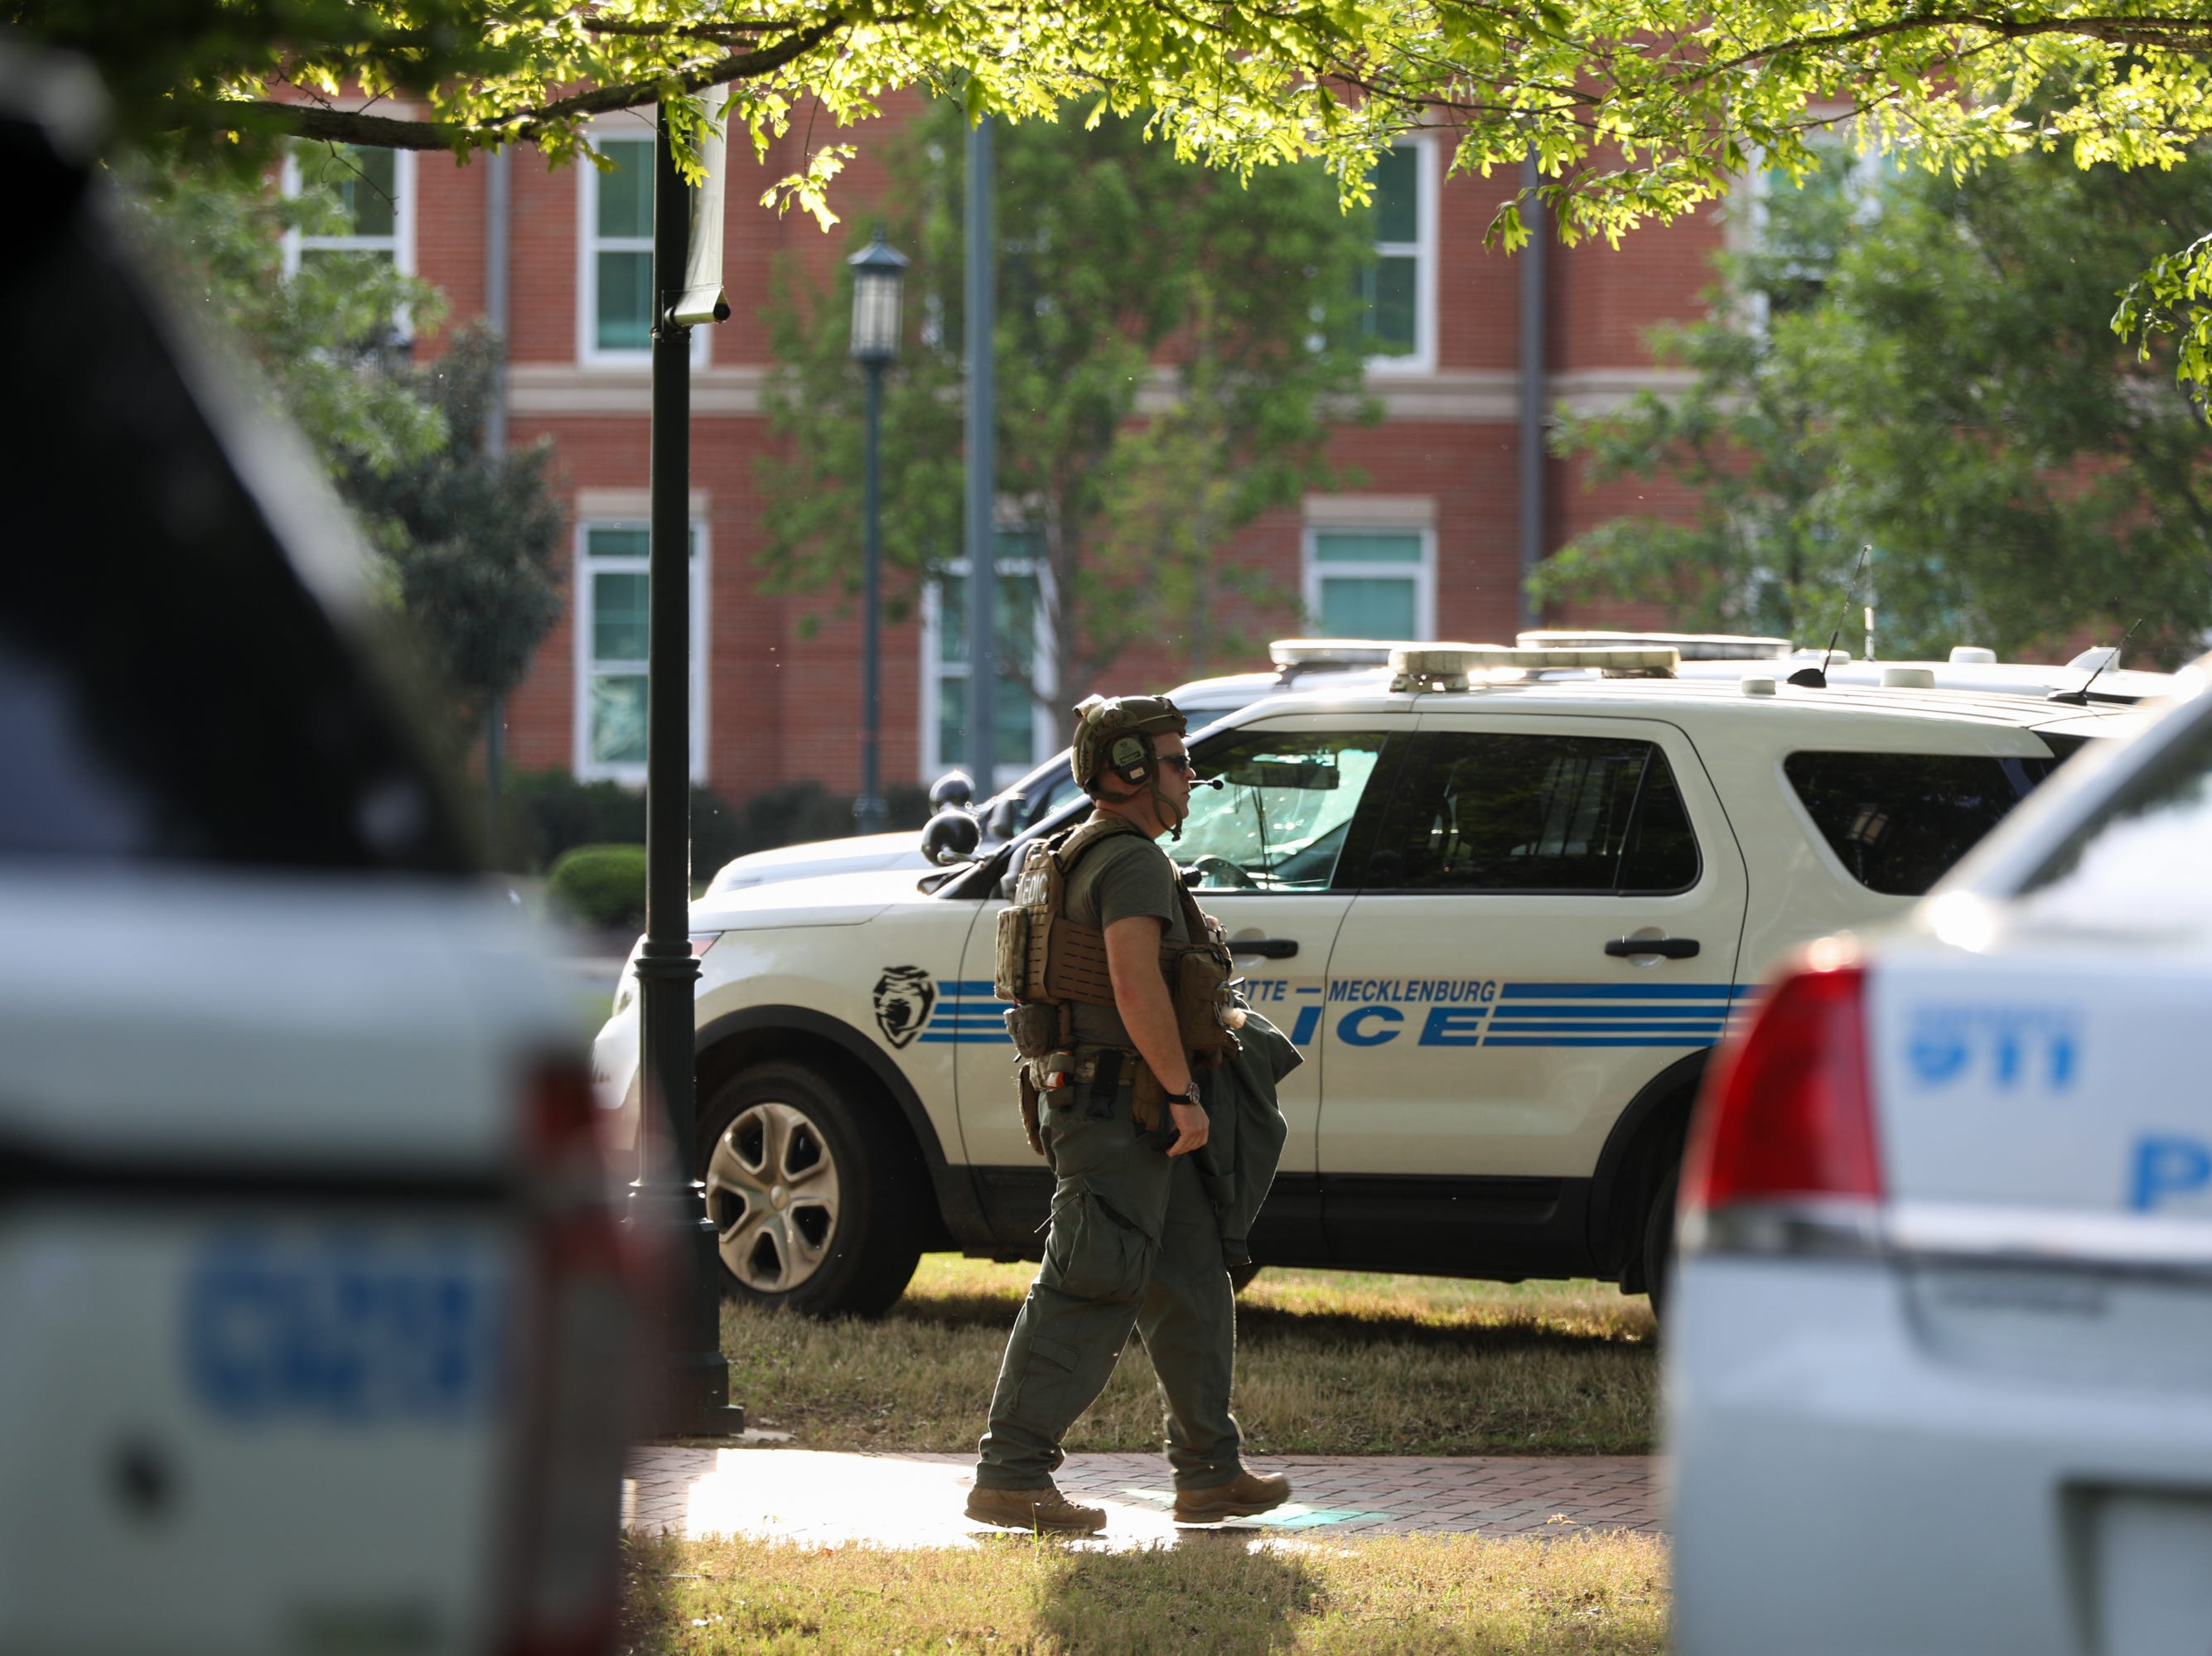 A medic walks between police cars after a shooting on the campus of University of North Carolina Charlotte in University City, Charlotte, on April 30, 2019. - Six people were shot, two of them died on the University of North Carolina Charlotte campus. One person was taken into custody, according to police sources.